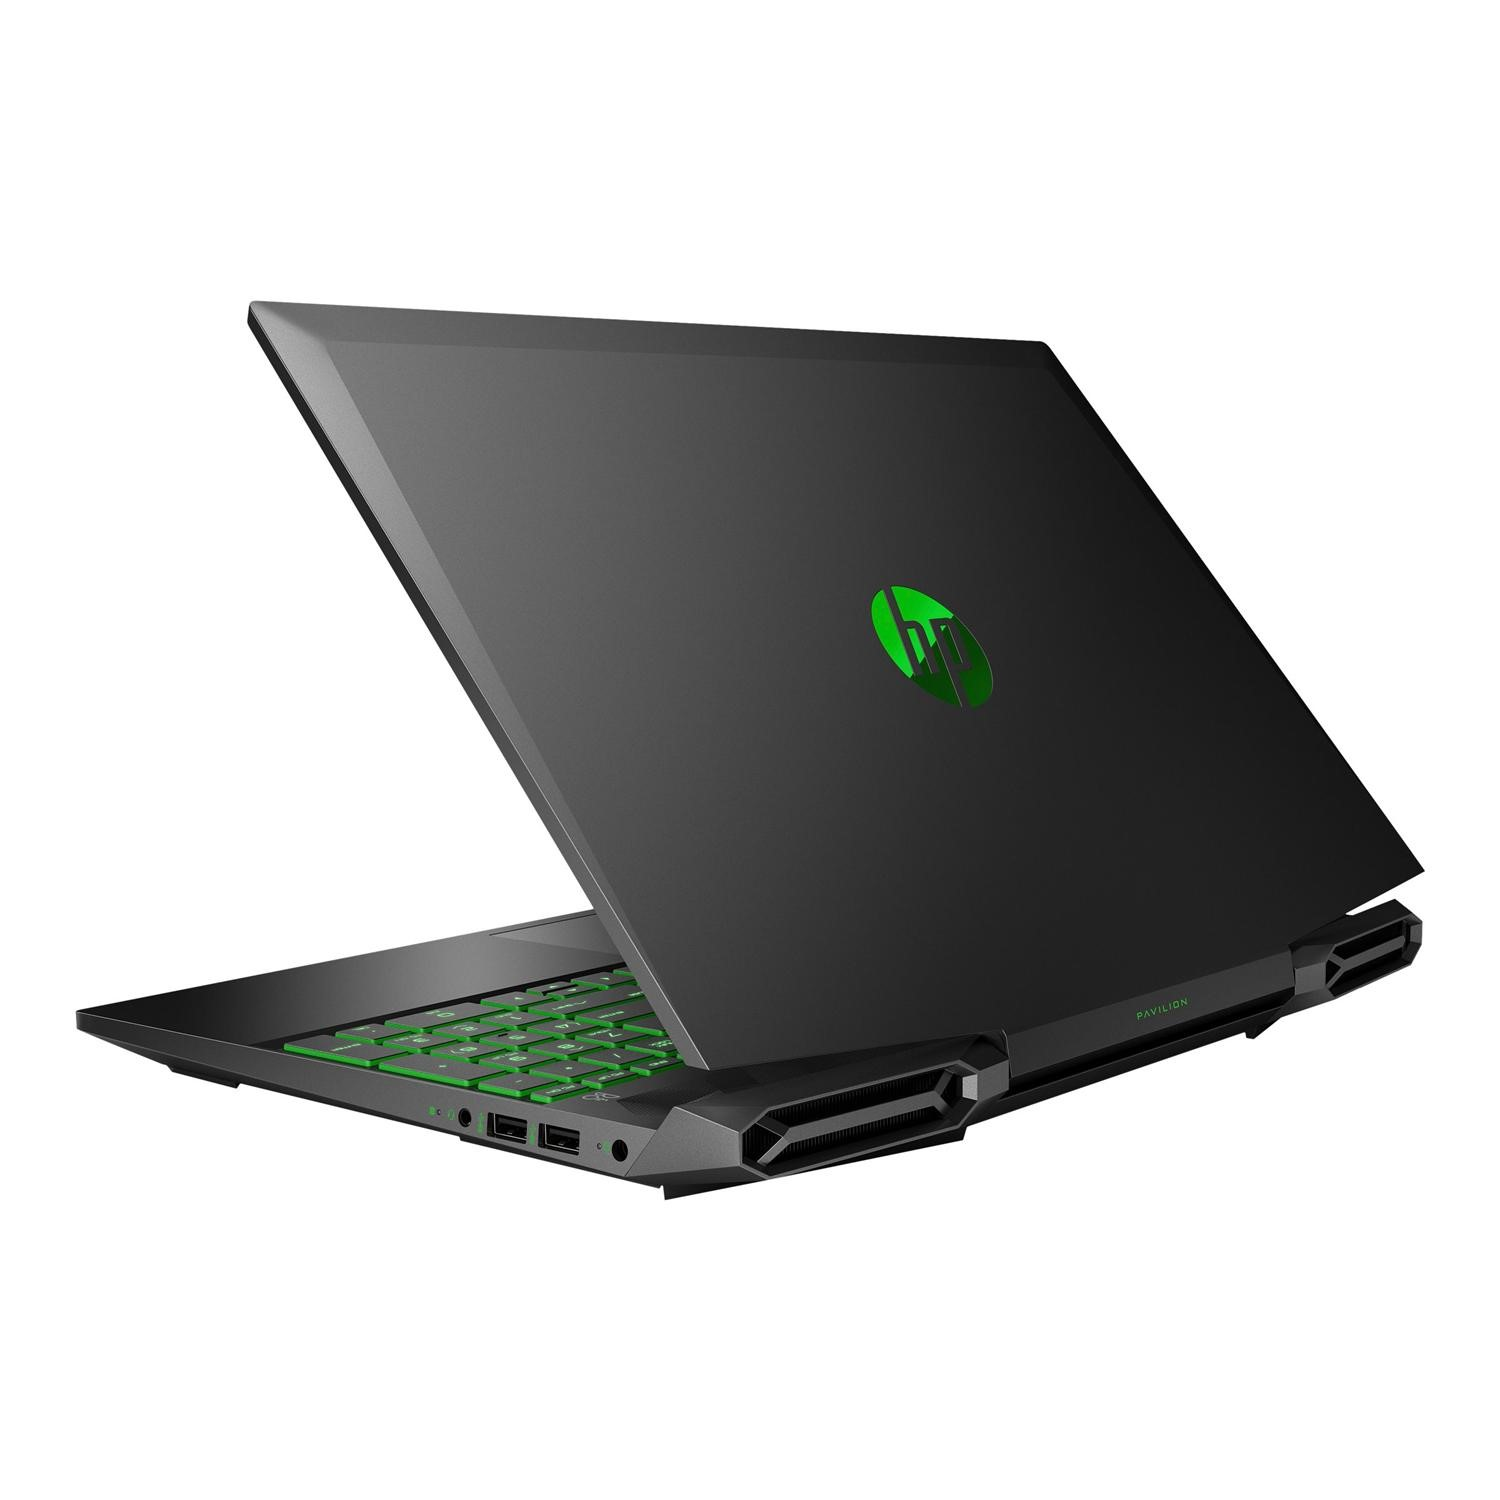 HP Pavilion 15-dk0026na Core i7-9750H 8GB 512GB SSD 15 6 Inch FHD GeForce  GTX 1660Ti 6GB Max-Q Windows 10 Home Gaming Laptop